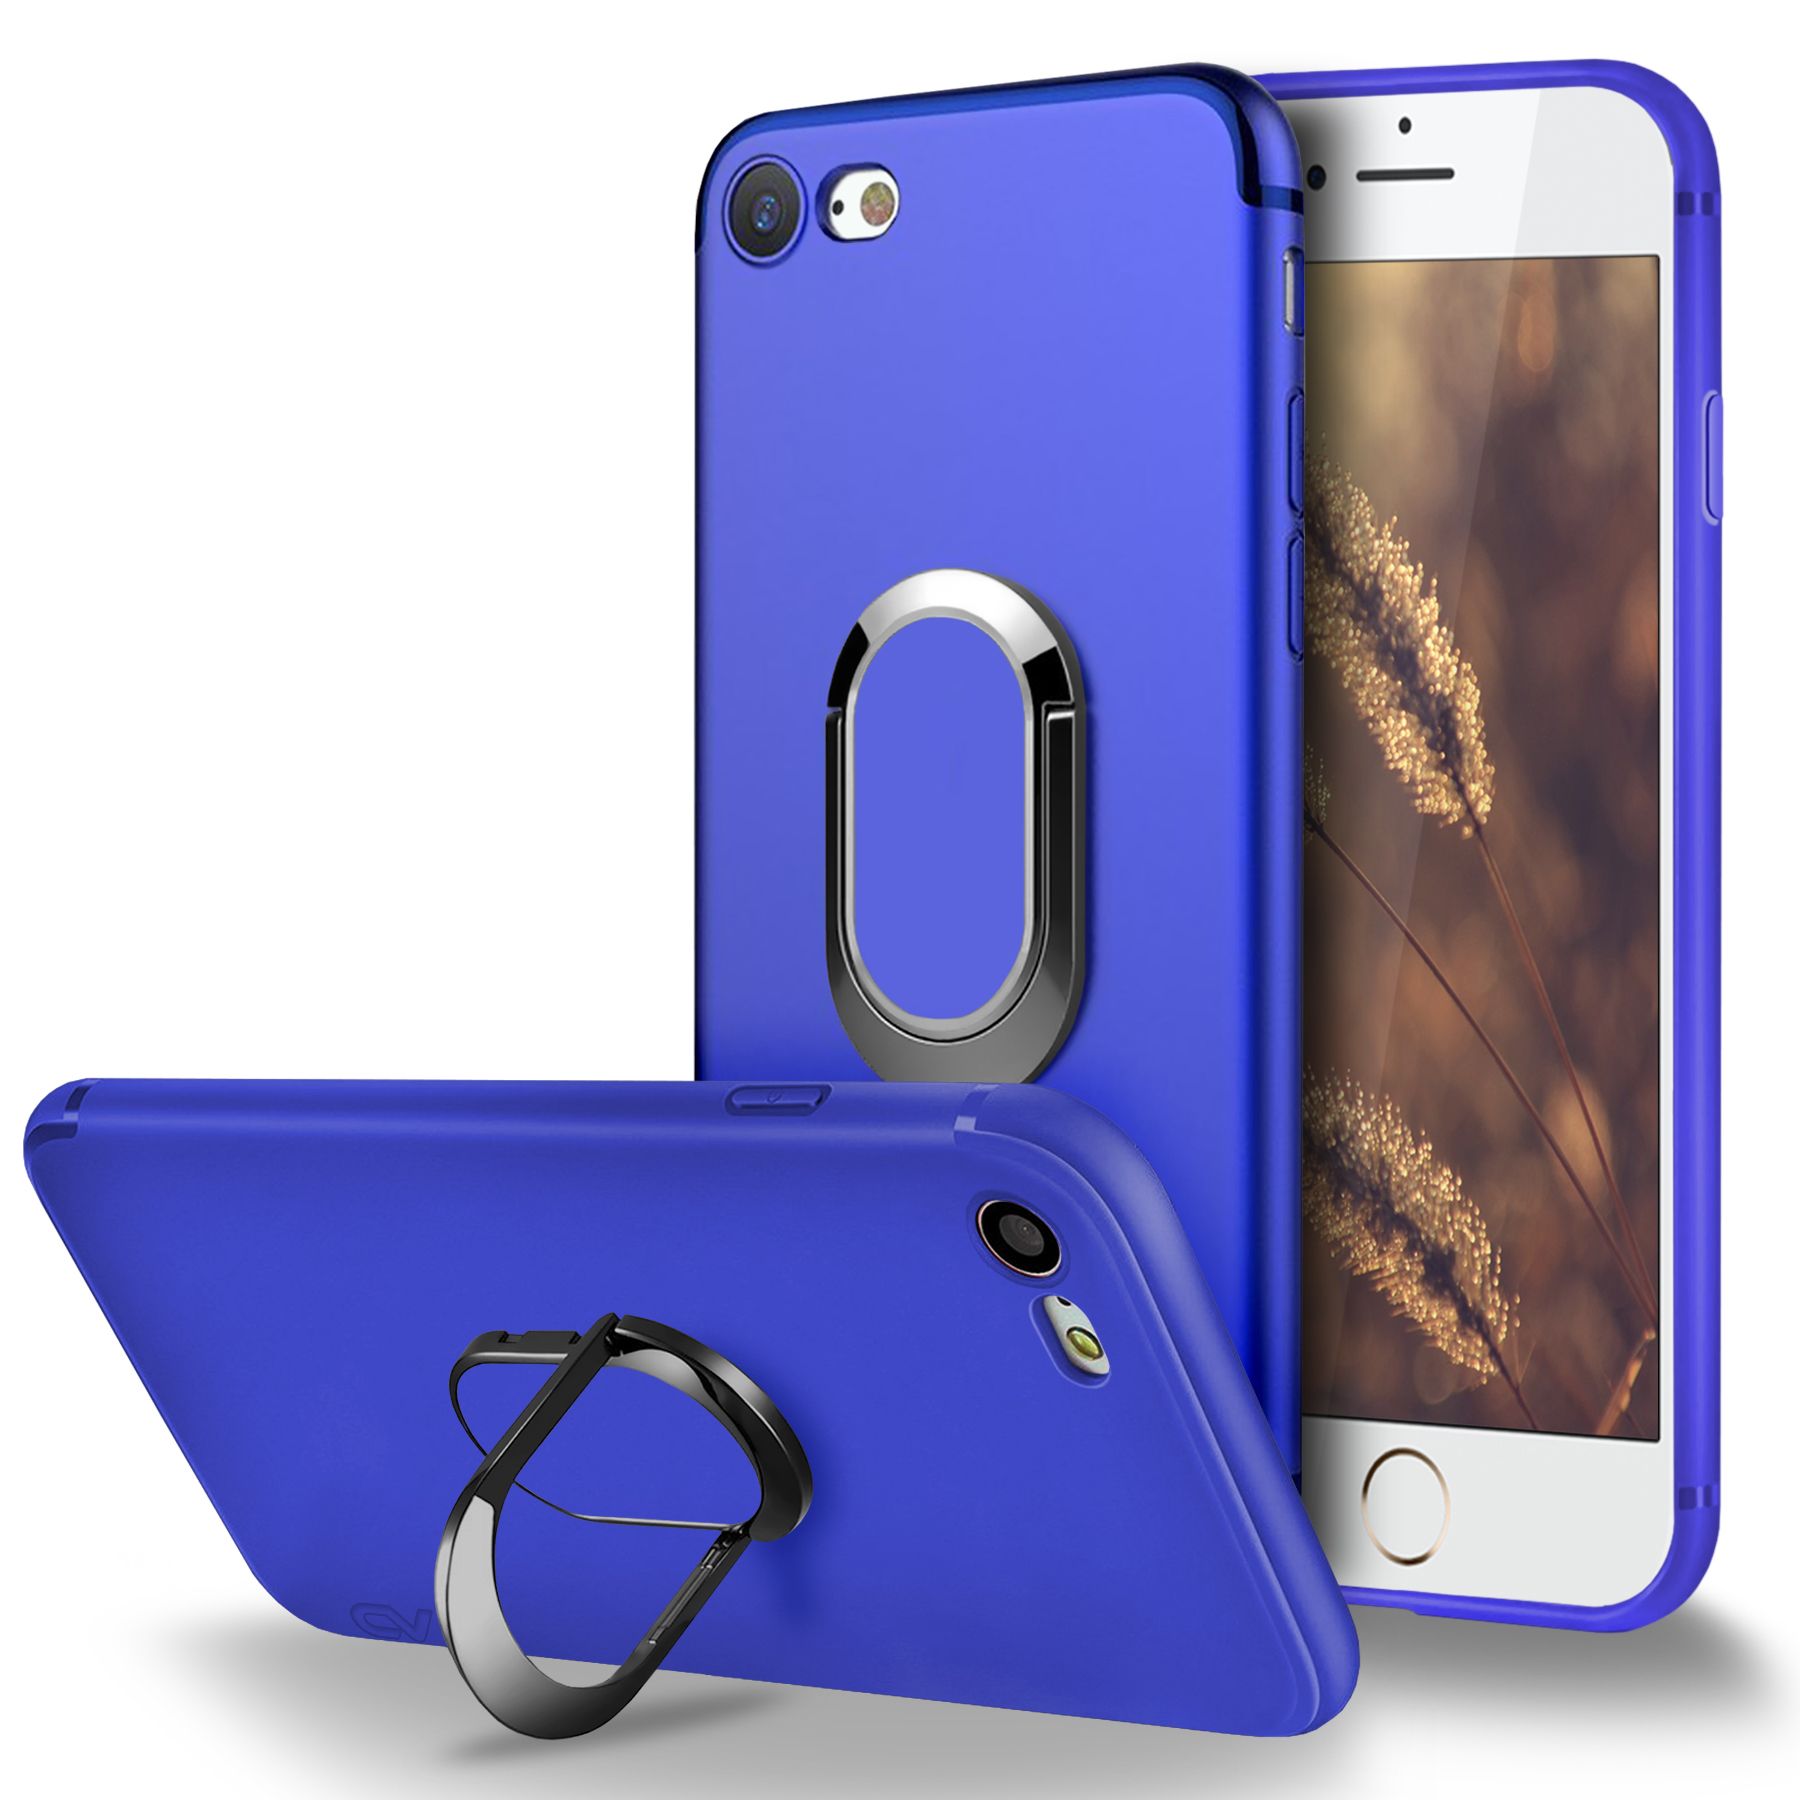 iPhone 6 Case, iPhone 6S Case, Cellularvilla [Slim Fit] Matte Soft Flexible TPU Protective Case with Built in 360 Degree Rotating Ring Holder Kickstand Cover For Apple iPhone 6 / 6S (4.7 inch)